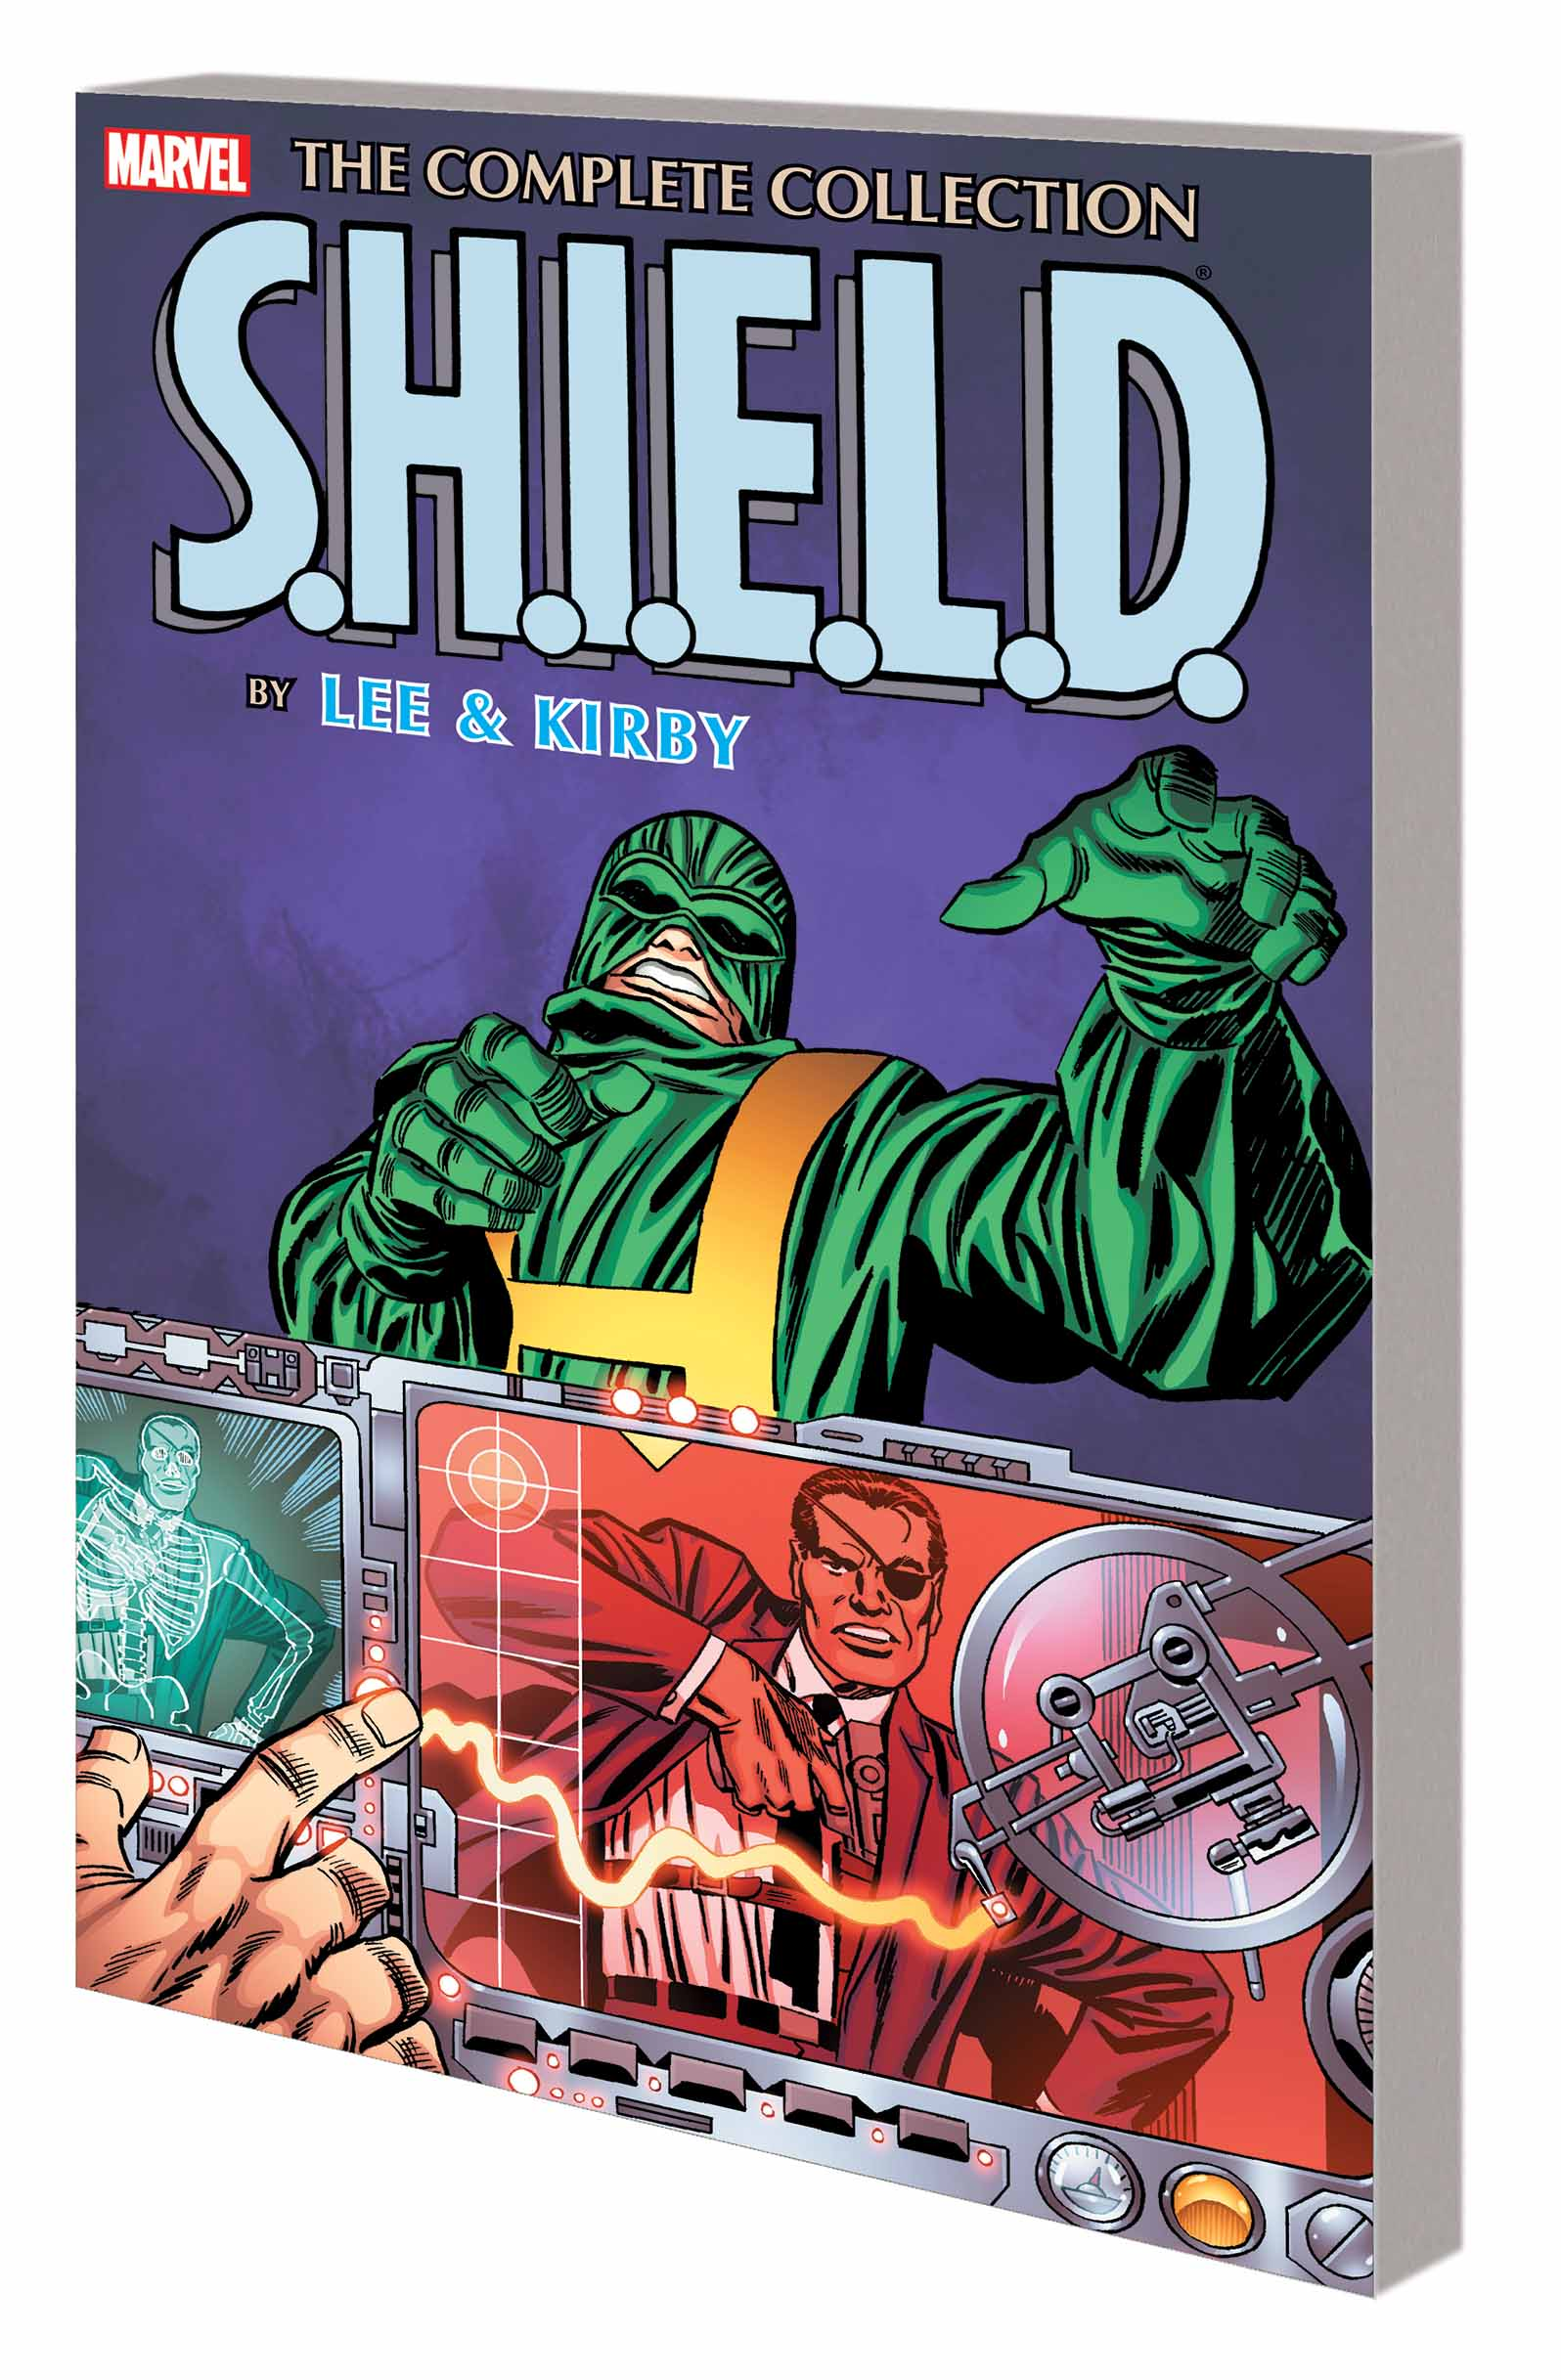 S.H.I.E.L.D. by Lee & Kirby: The Complete Collection (Trade Paperback)